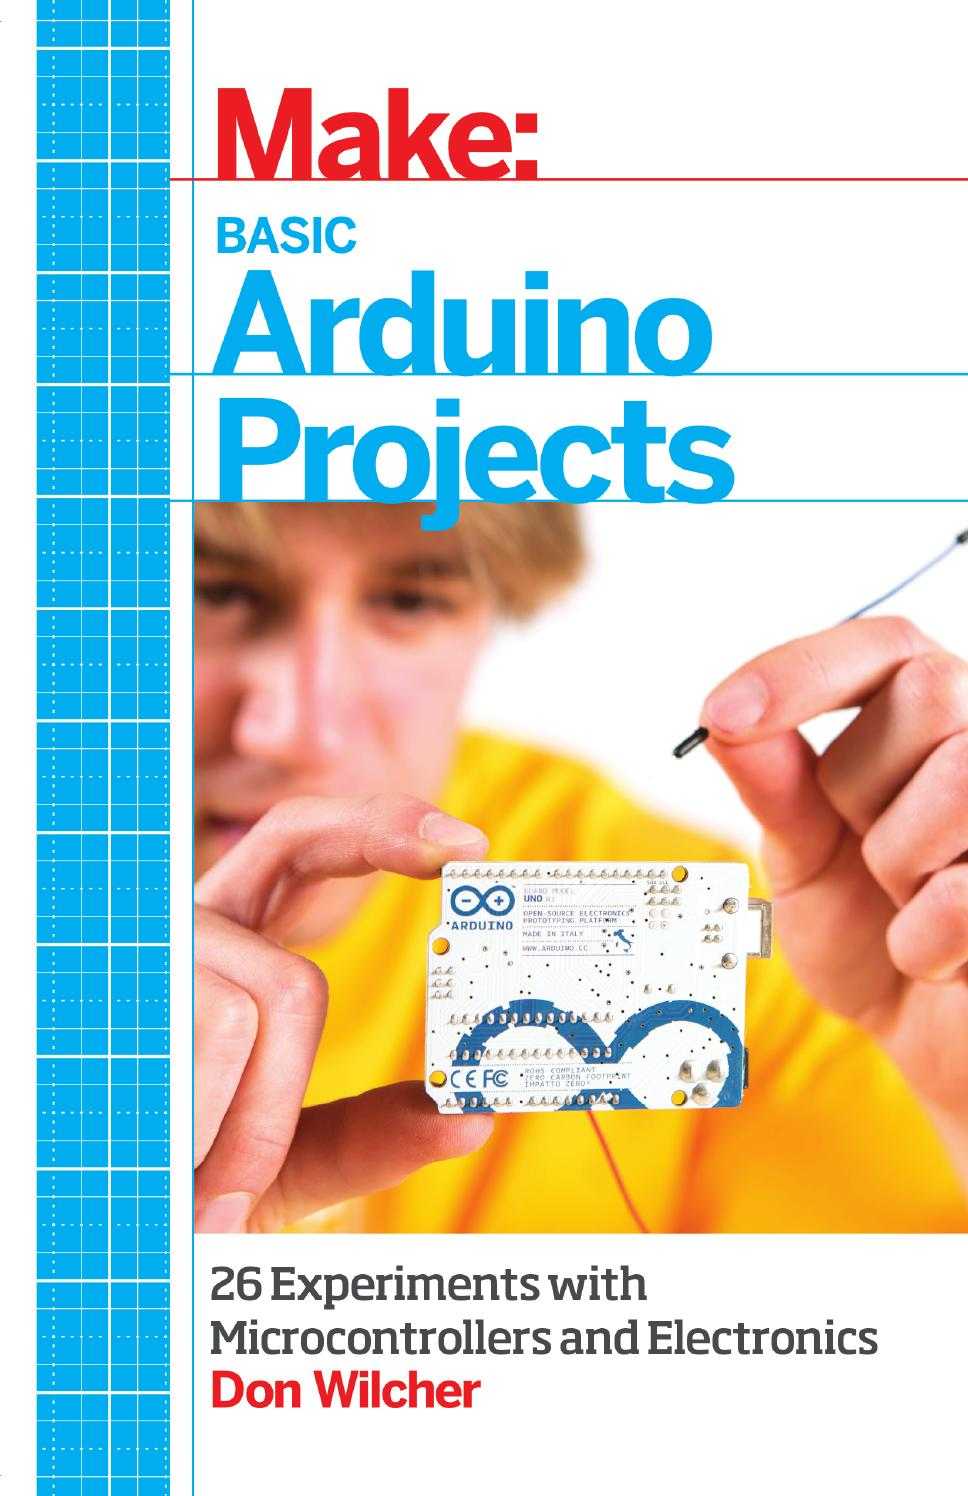 Make Basic Arduino Projects 26 Experiments With Microcontrollers And Simple Logic Circuit Design Electronics 2014 By Memik Issuu